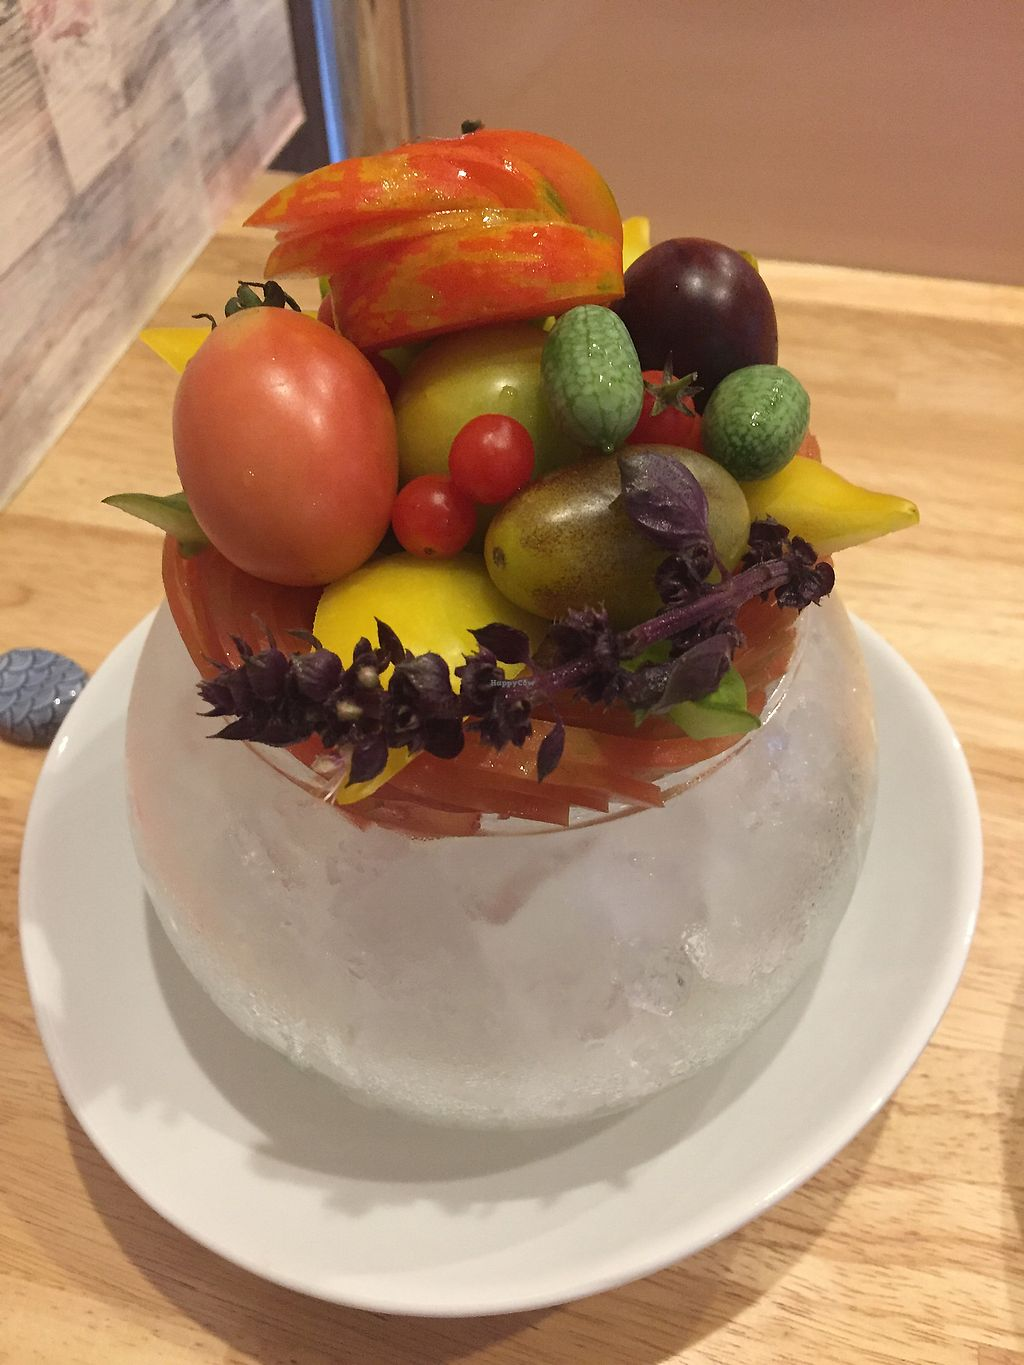 """Photo of LBK Craft  by <a href=""""/members/profile/JaimeHogan"""">JaimeHogan</a> <br/>Tomato Salad - straight from the farm <br/> July 19, 2017  - <a href='/contact/abuse/image/88083/282295'>Report</a>"""